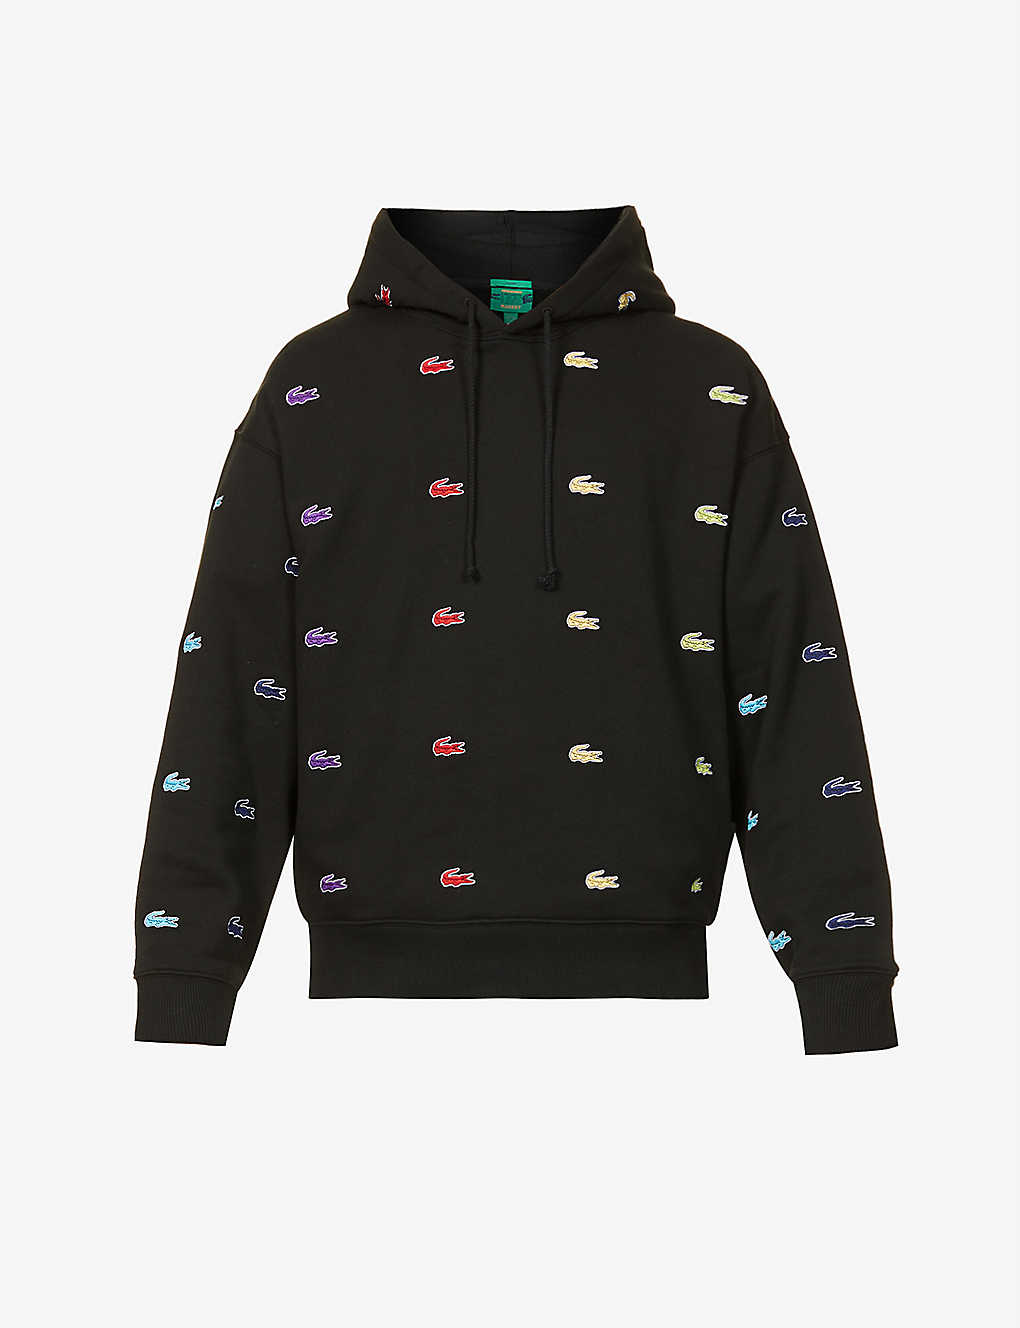 LACOSTE: Lacoste x Chinatown Market logo-embellished cotton-jersey hoody